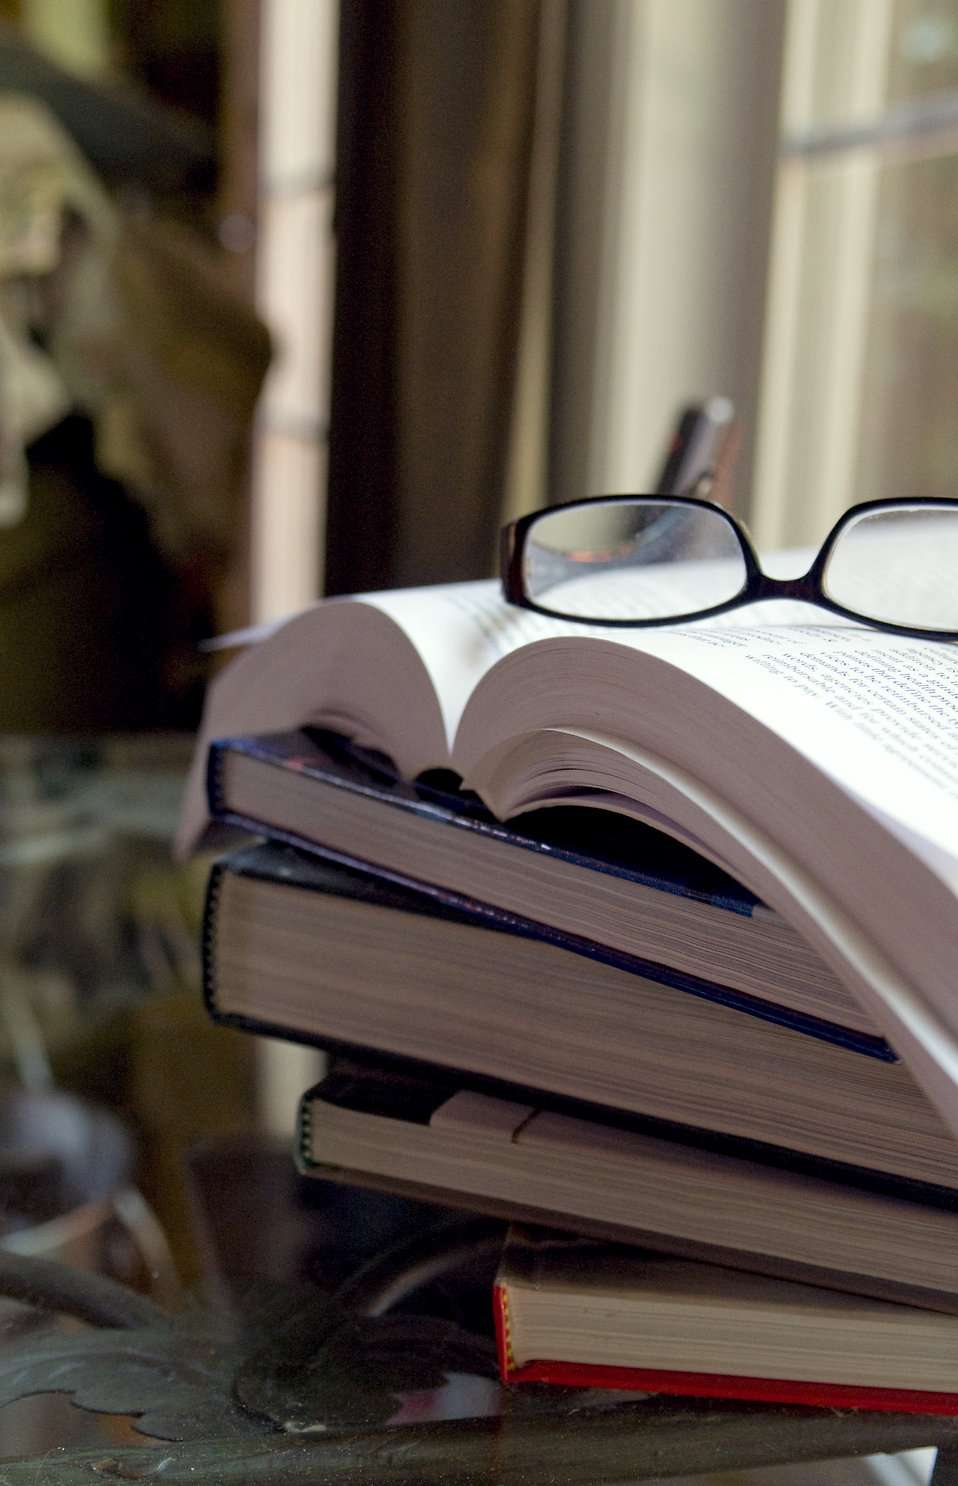 A pair of glasses with a stack of books : Free Stock Photo